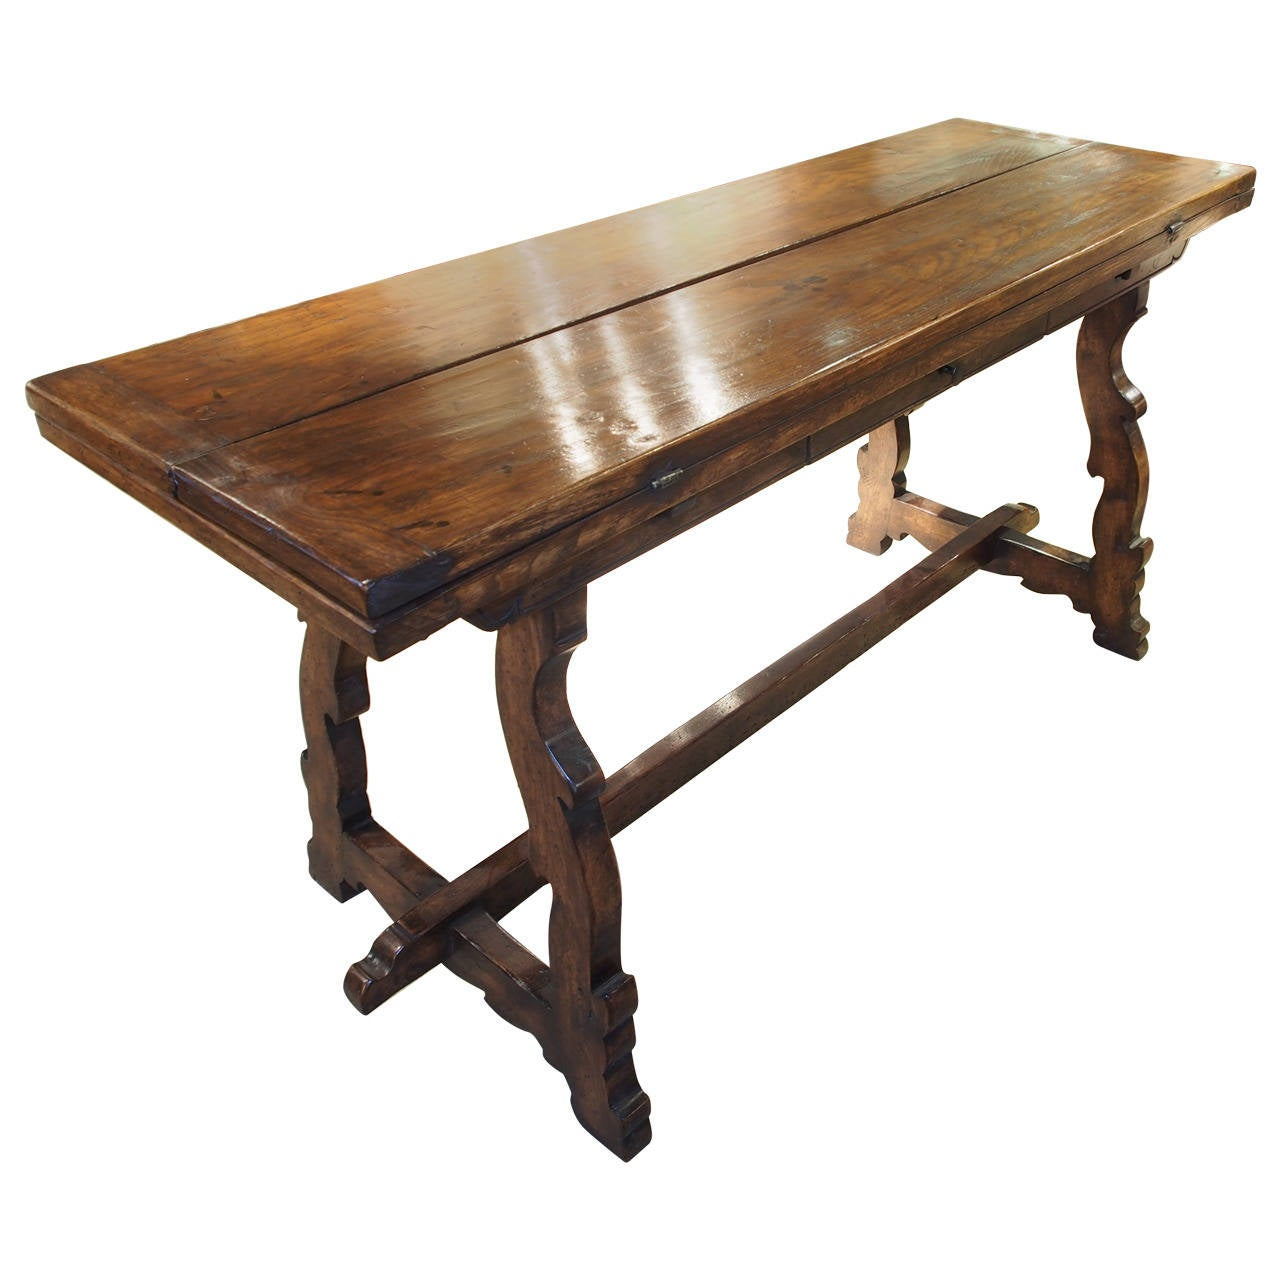 Spanish oak table with drawer circa 1950 at 1stdibs for Table in spanish